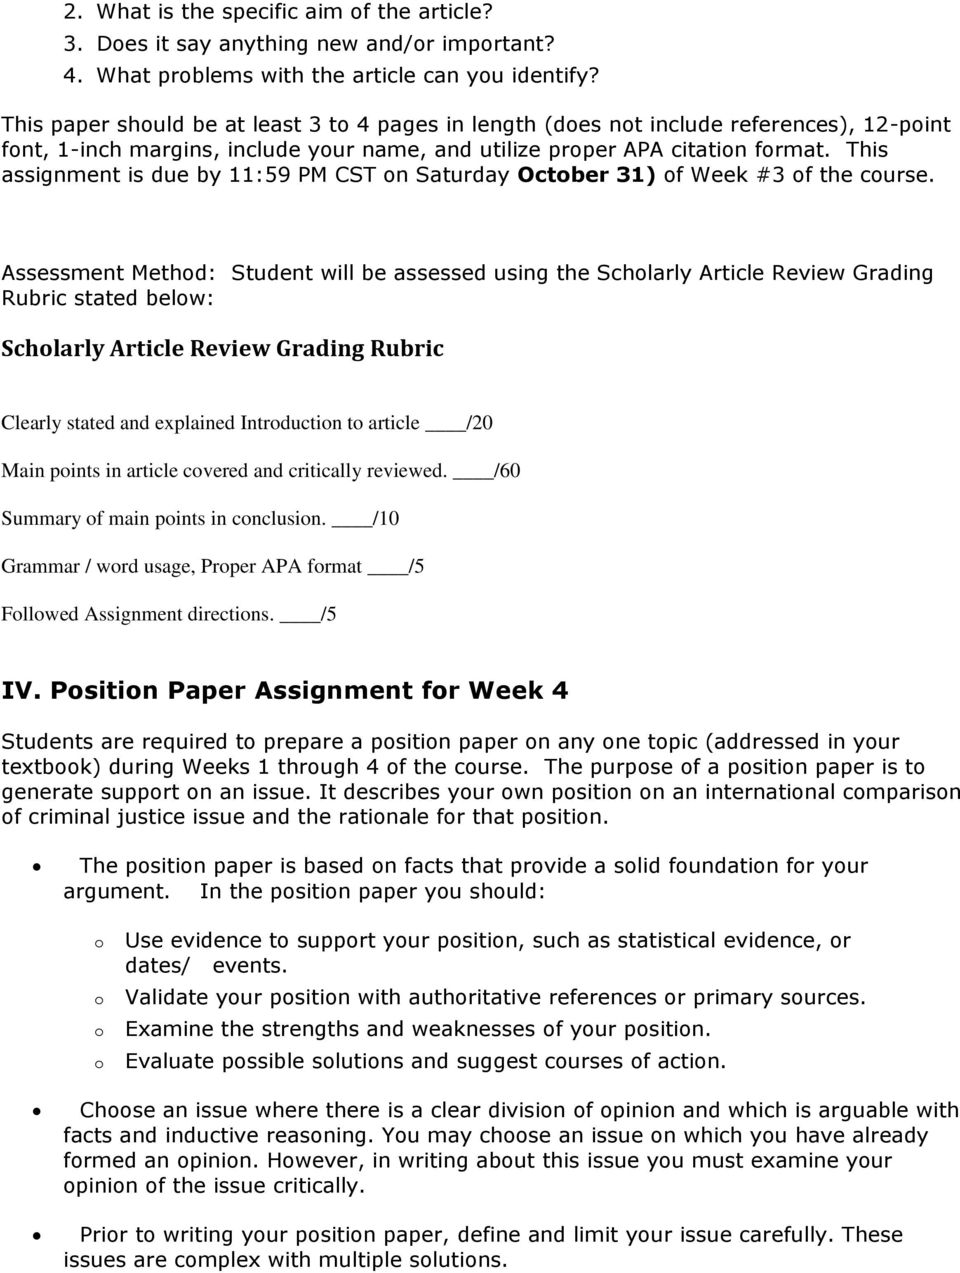 This assignment is due by 11:59 PM CST on Saturday October 31) of Week #3 of the course.